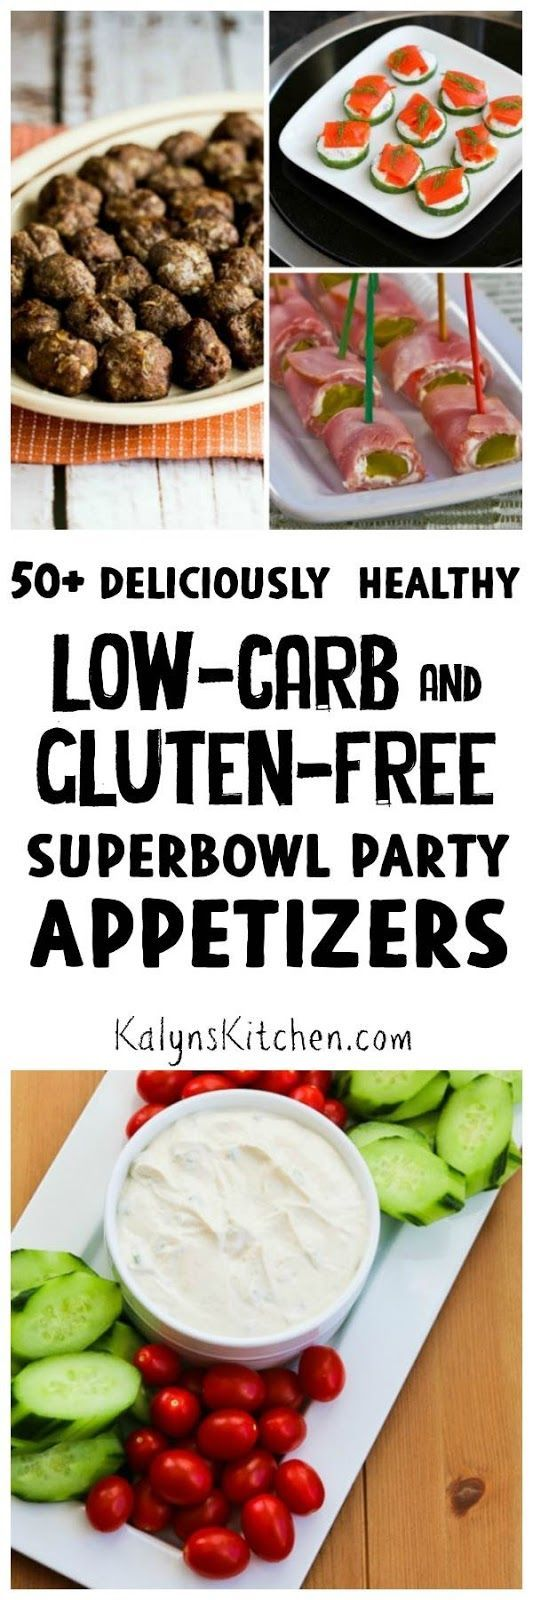 If you're limiting carbs for weight loss or health reasons, Superbowl parties can be challenging! Here are 50+ Deliciously Healthy Low-Carb and Gluten-Free Superbowl Appetizer Recipes to give you some alternatives. These are recipes from some of the best blogs on the web, enjoy! [found on KalynsKitchen.com]